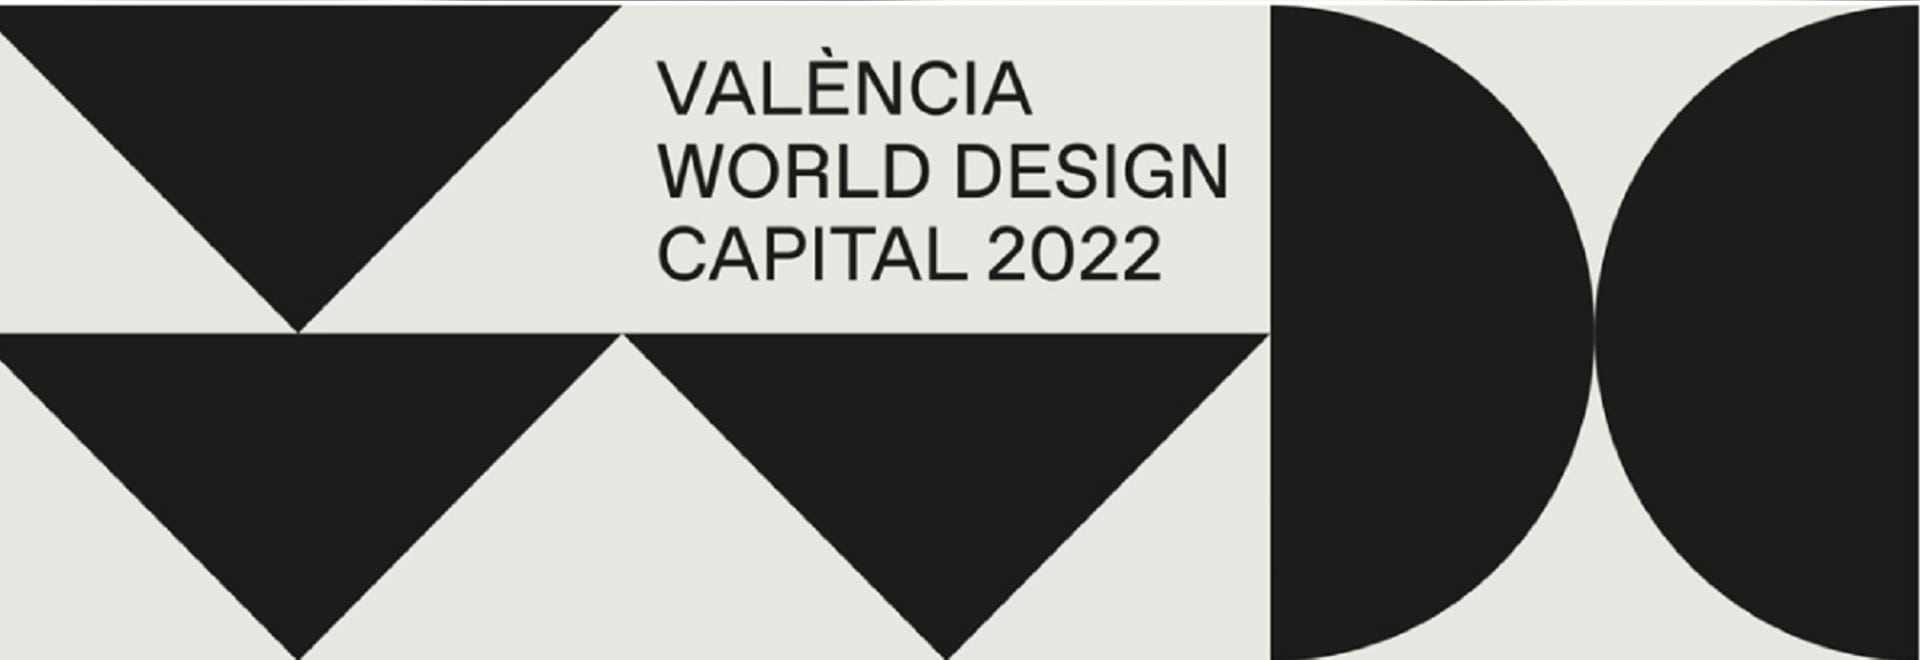 Equipo DRT, promoting Valencia as the host of World Design 2022